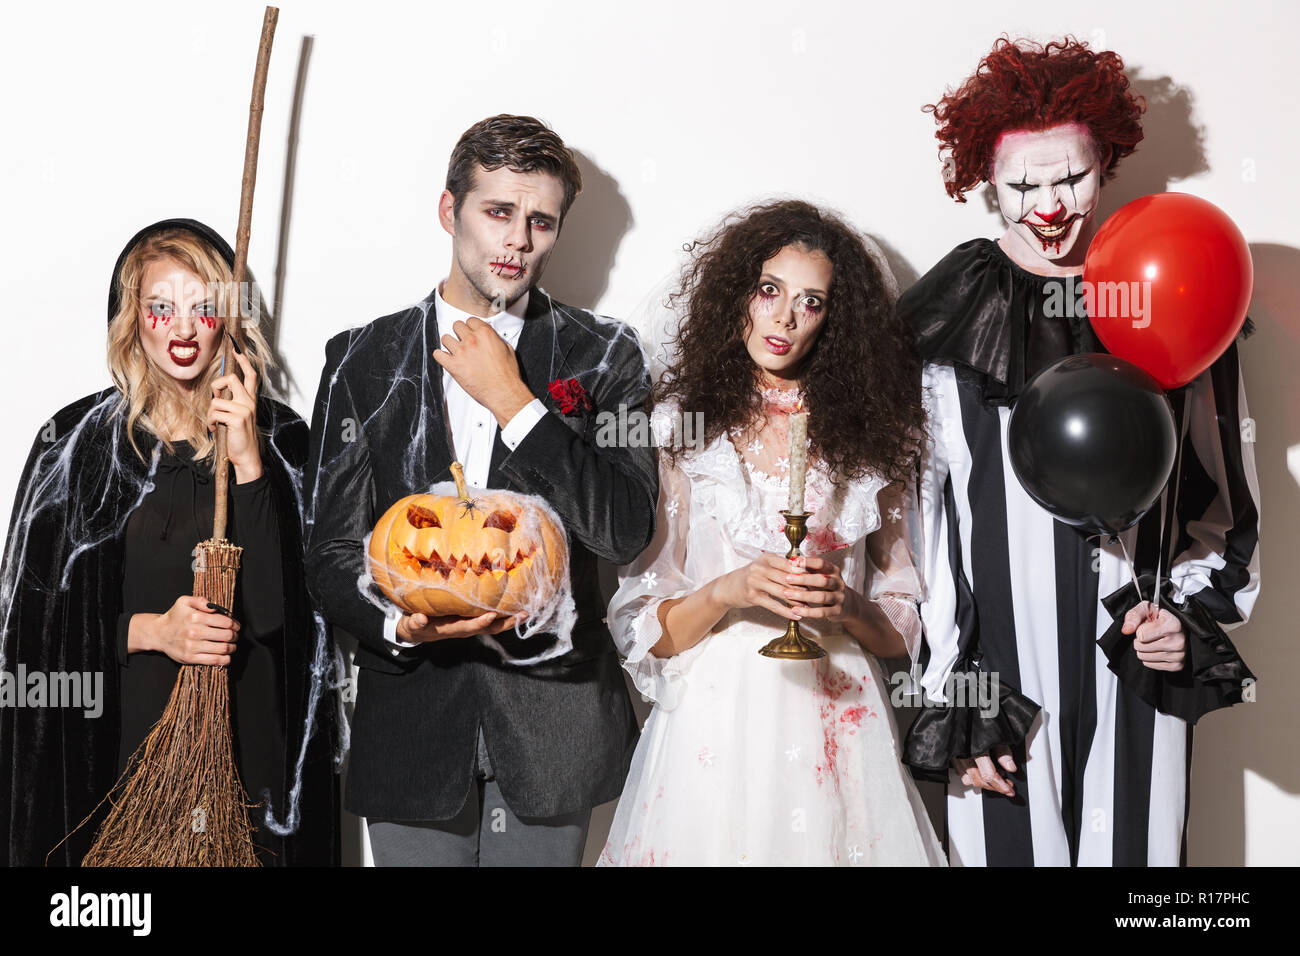 Halloween Group Costumes Scary.Group Of Friends Dressed In Scary Costumes Celebrating